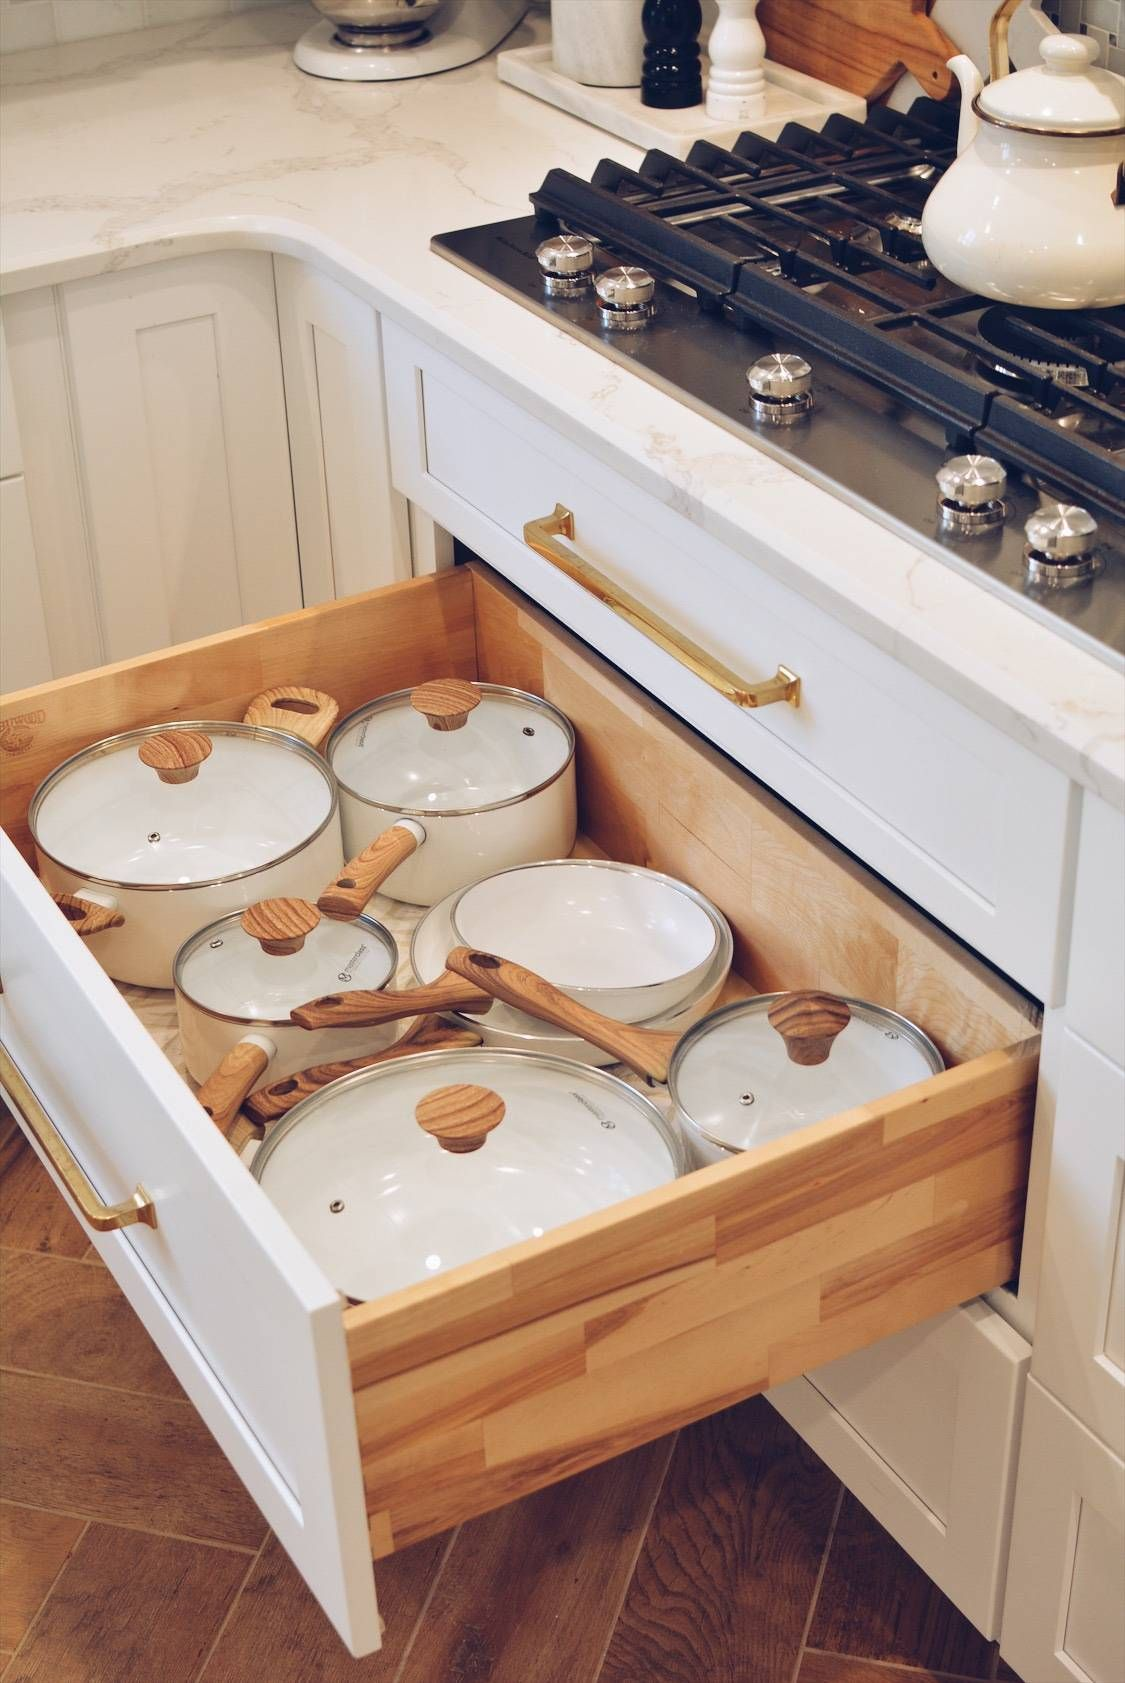 Kitchen Organization: How to Organize Your Kitchen Drawers #cabinetorganization